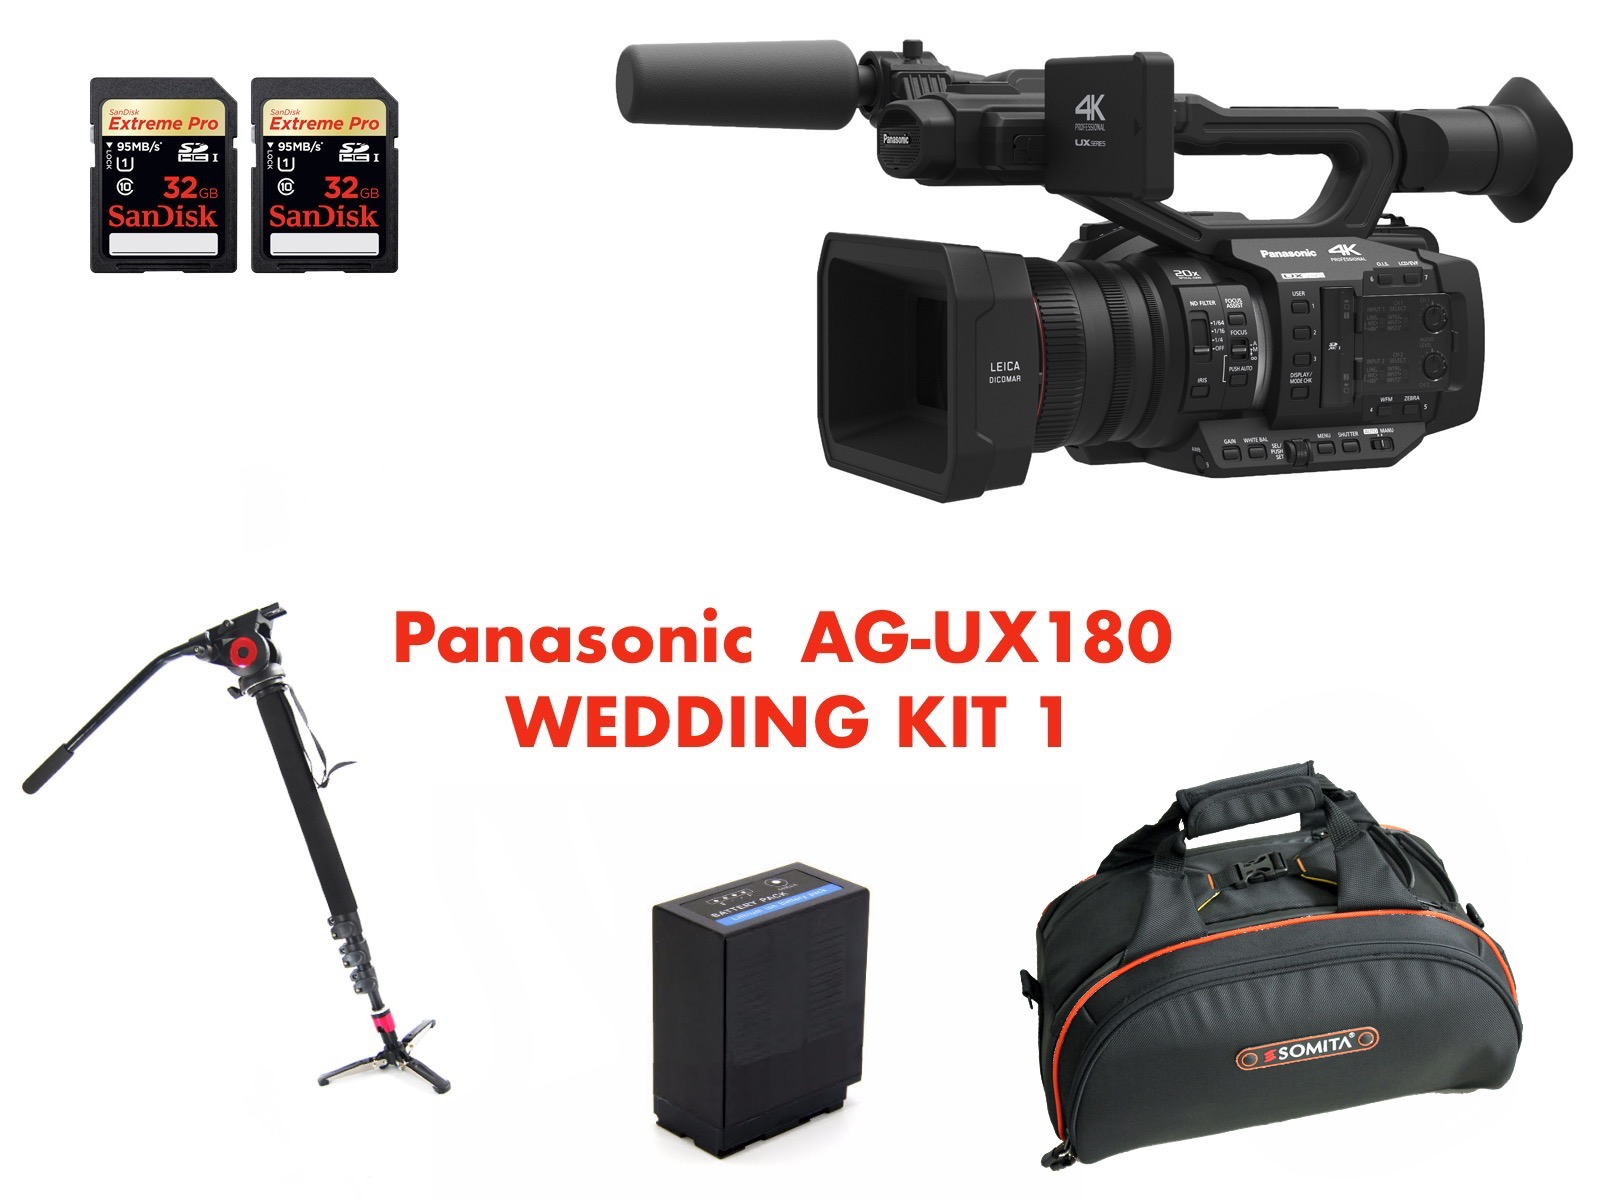 PANASONIC AG-UX180 WEDDING KIT